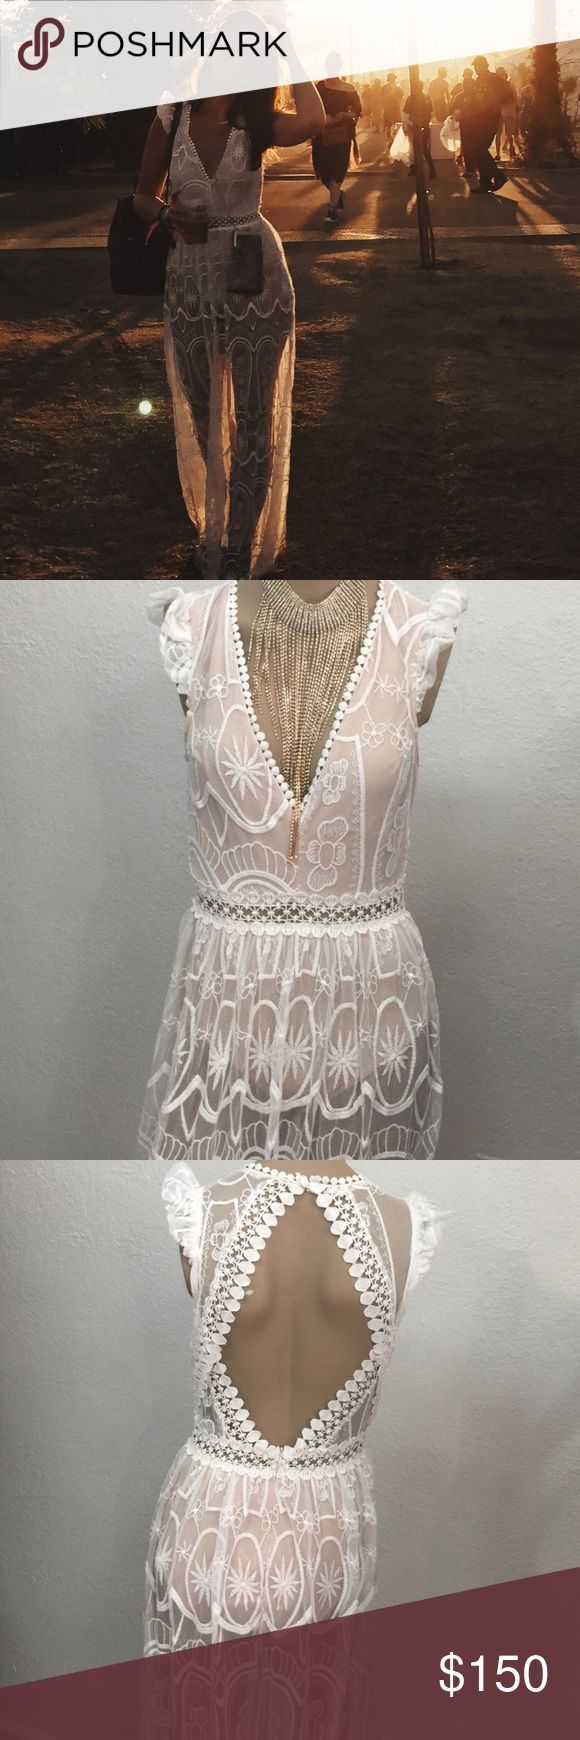 White Lace Nude Illusion Maxi Dress Festival Style Worn only once to Coachella 2017. Sheer with built in bodysuit lining with snap closure, key-hole back and low V neckline. L'atiste Dresses Maxi